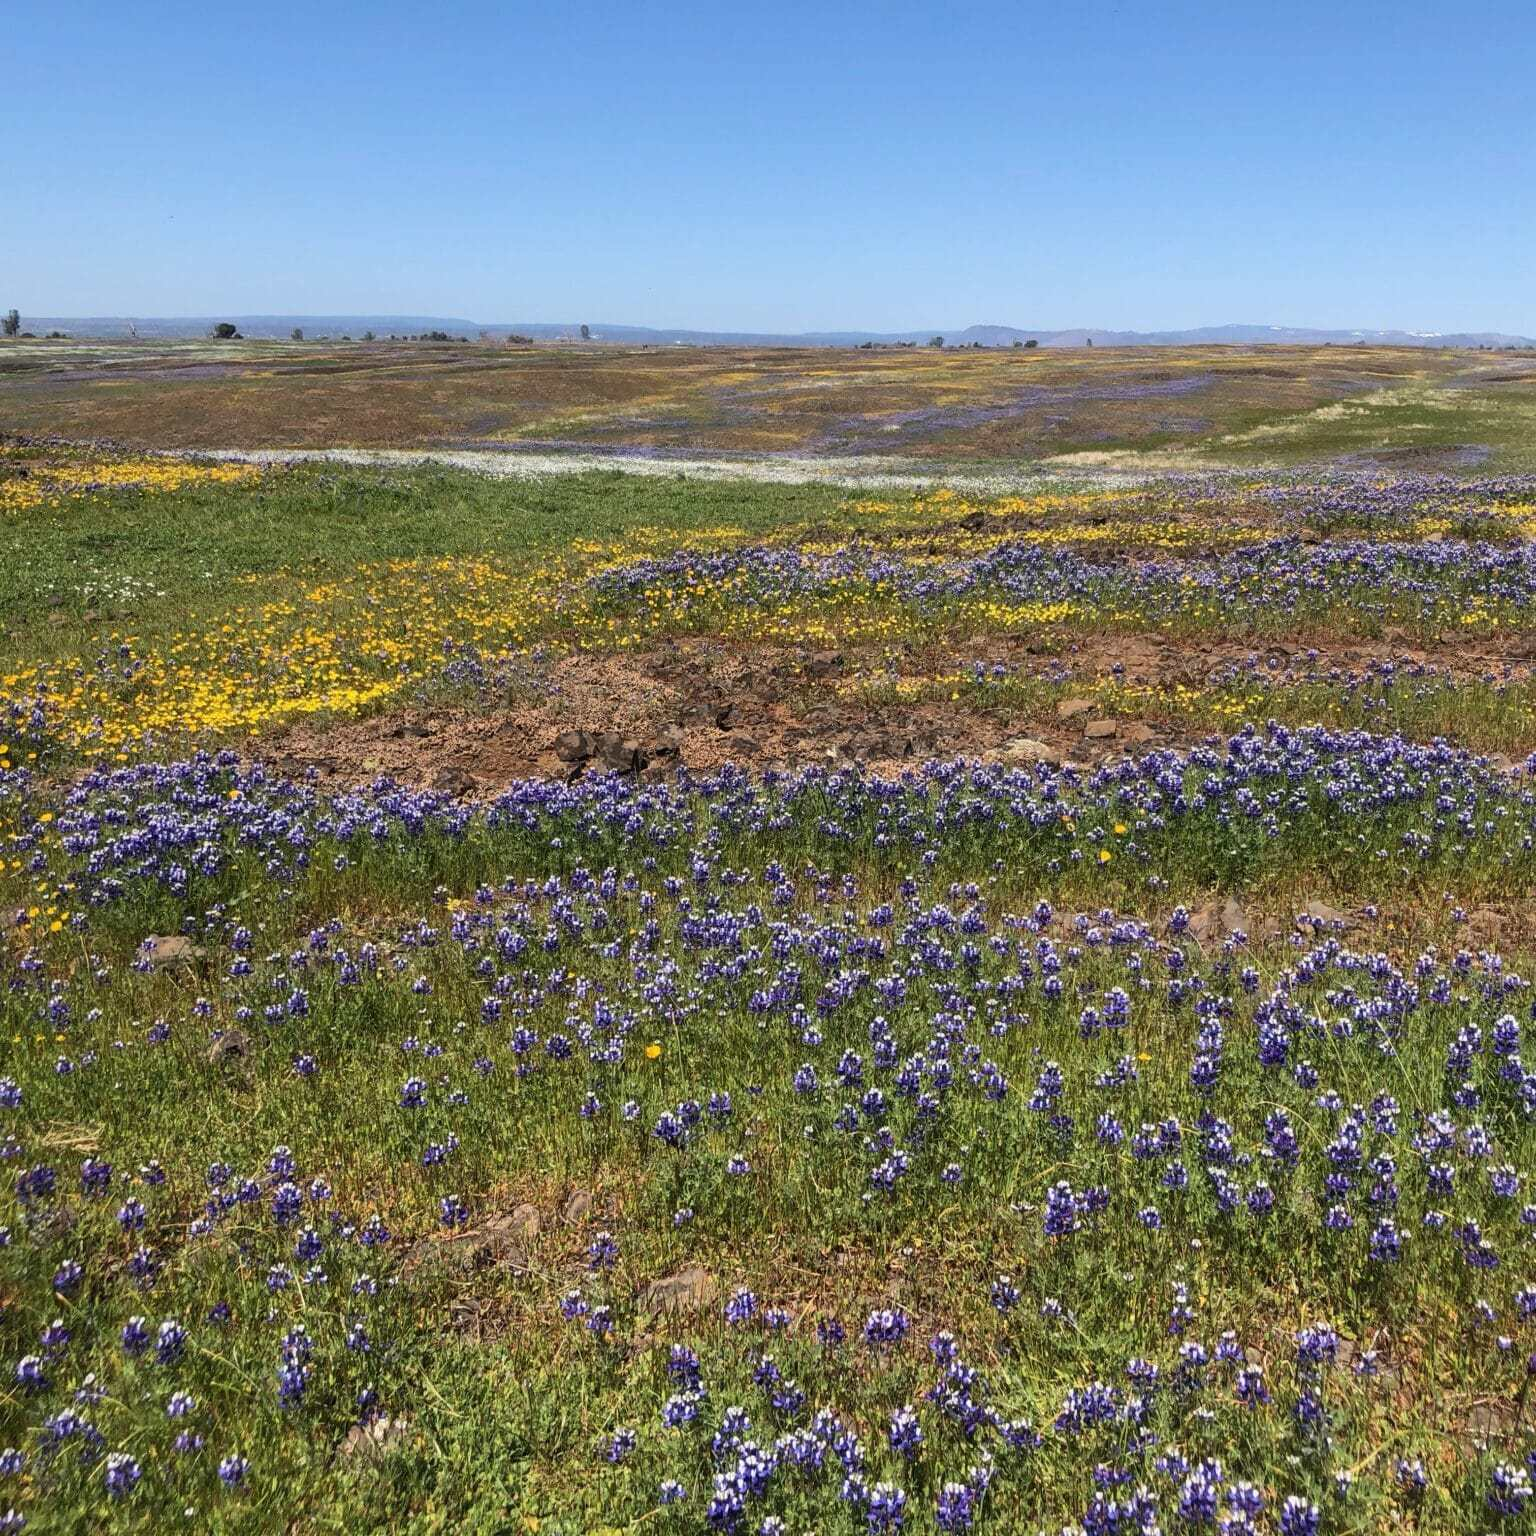 Field of wildflowers, North Tabletop Mountain Ecological Reserve